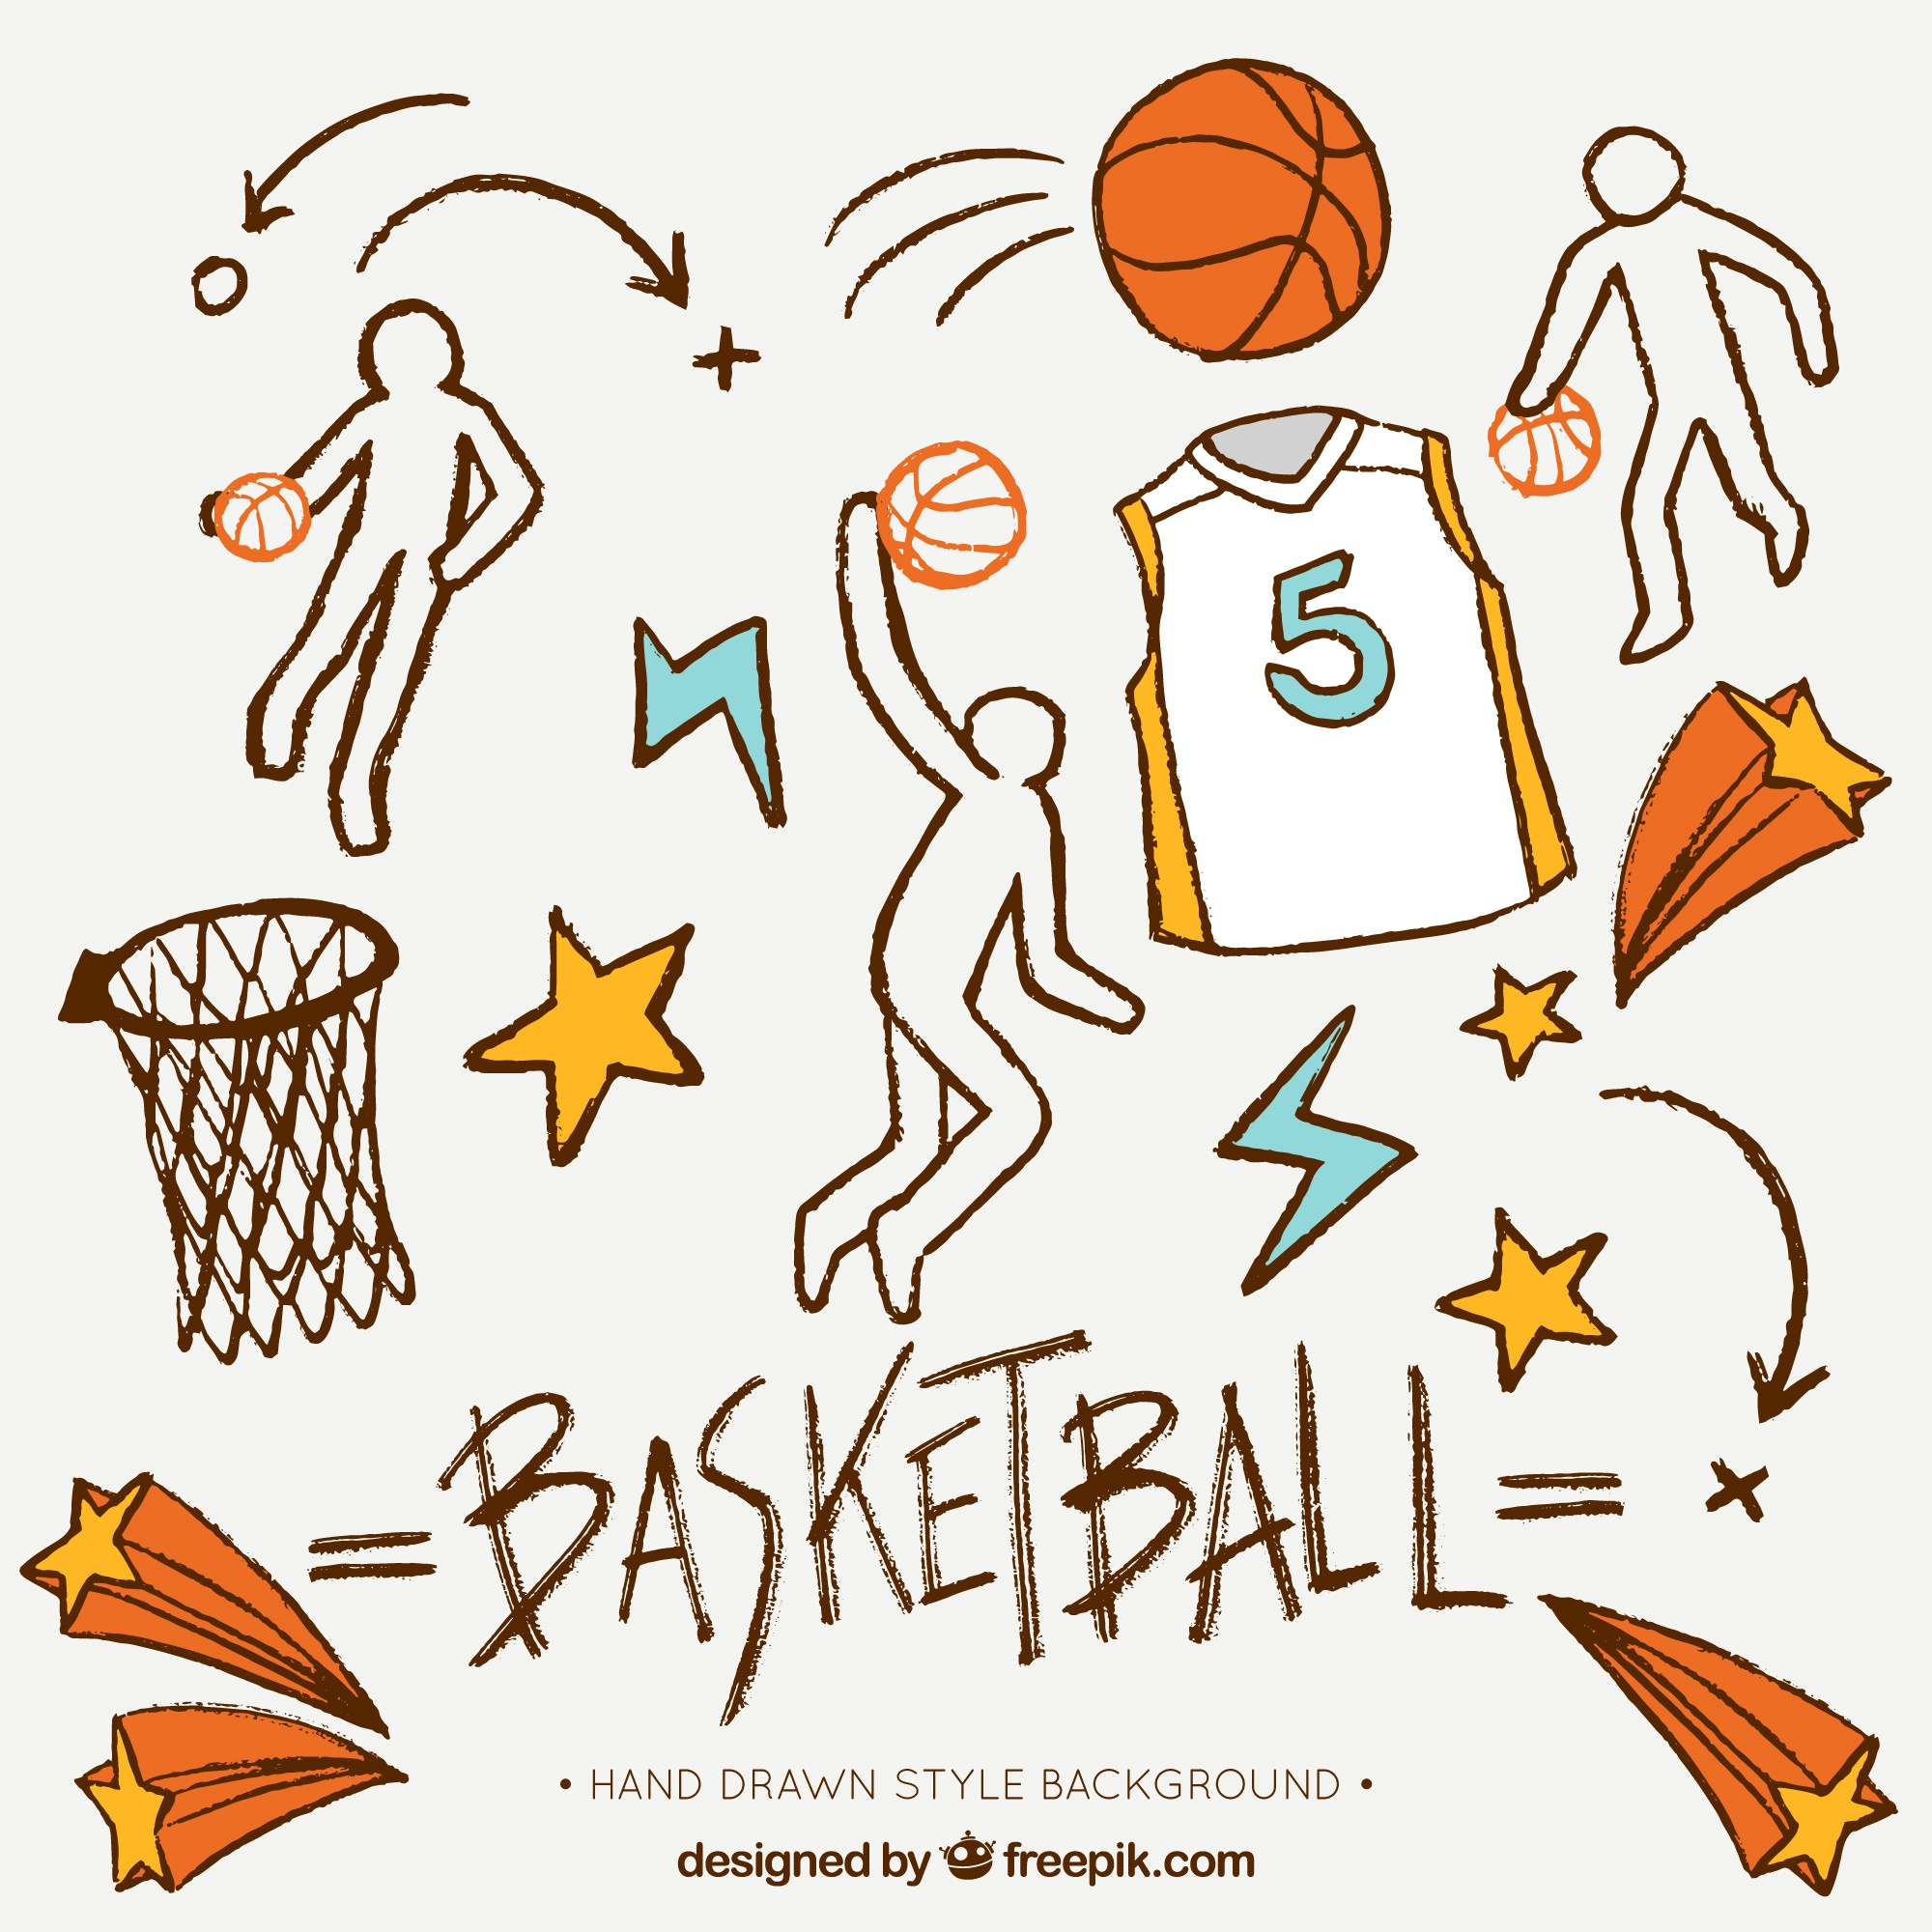 Hand-drawn background with decorative basketball elements